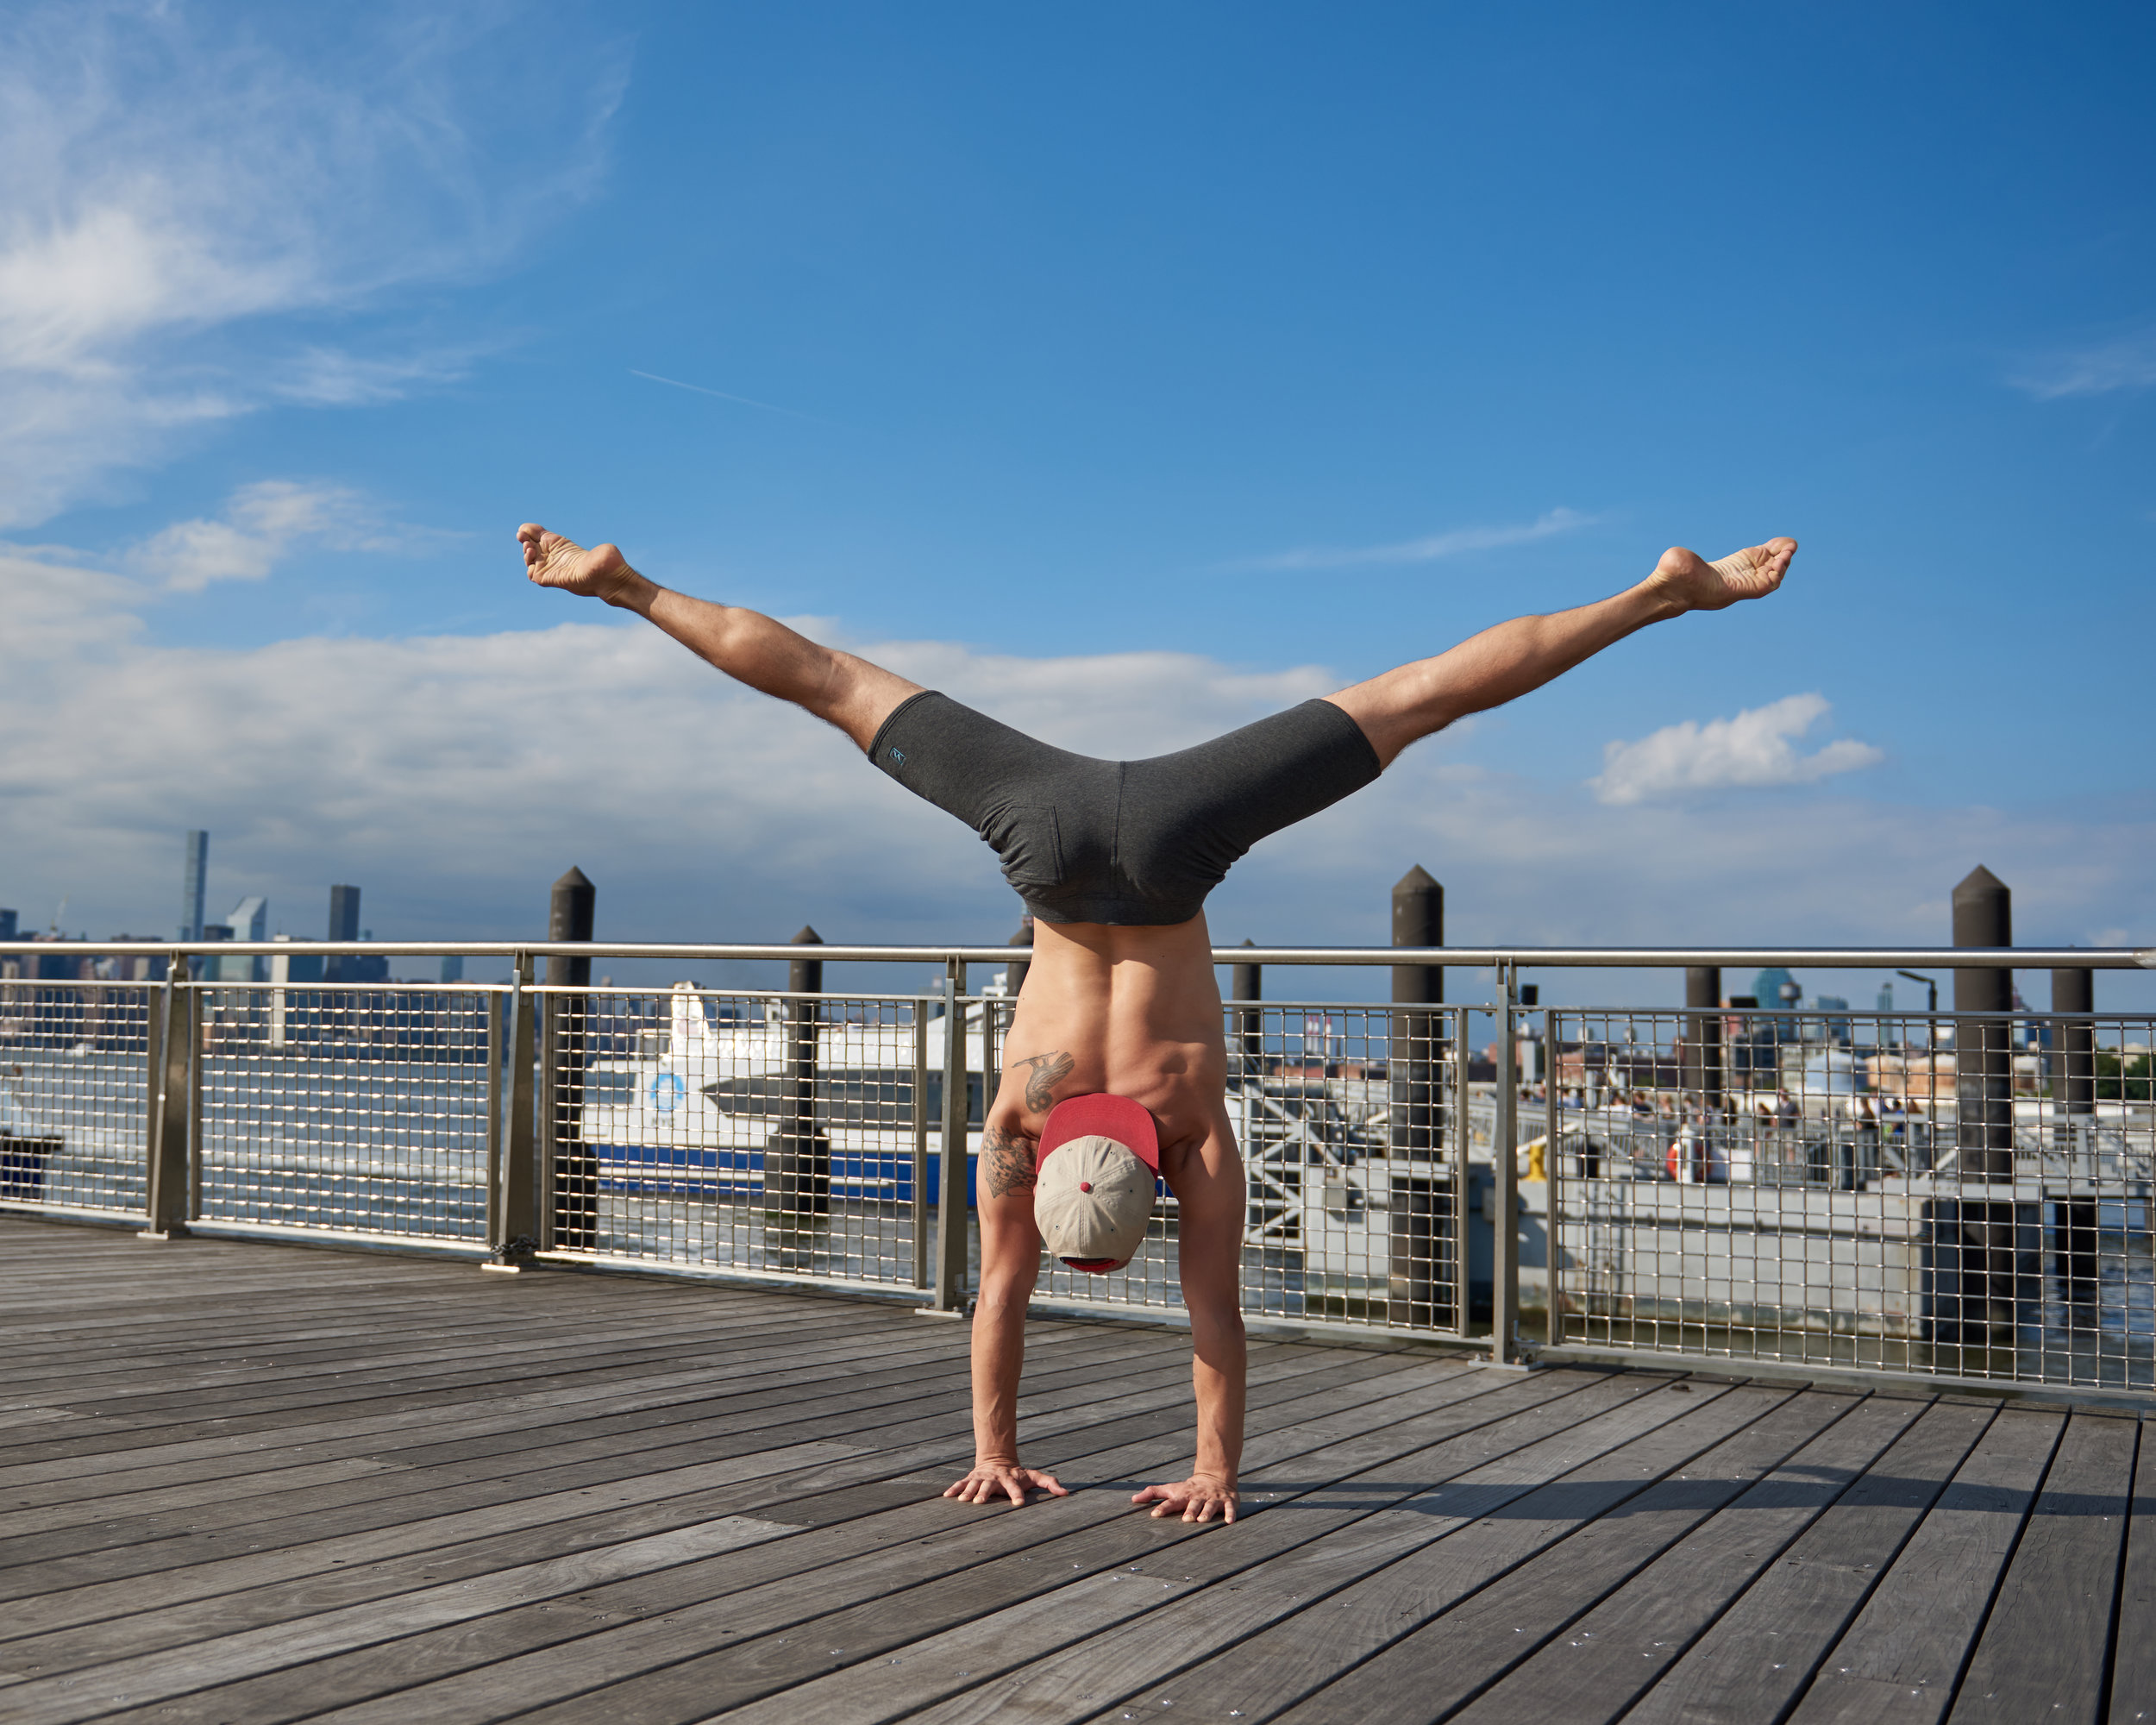 Handstand on a boardwalk!